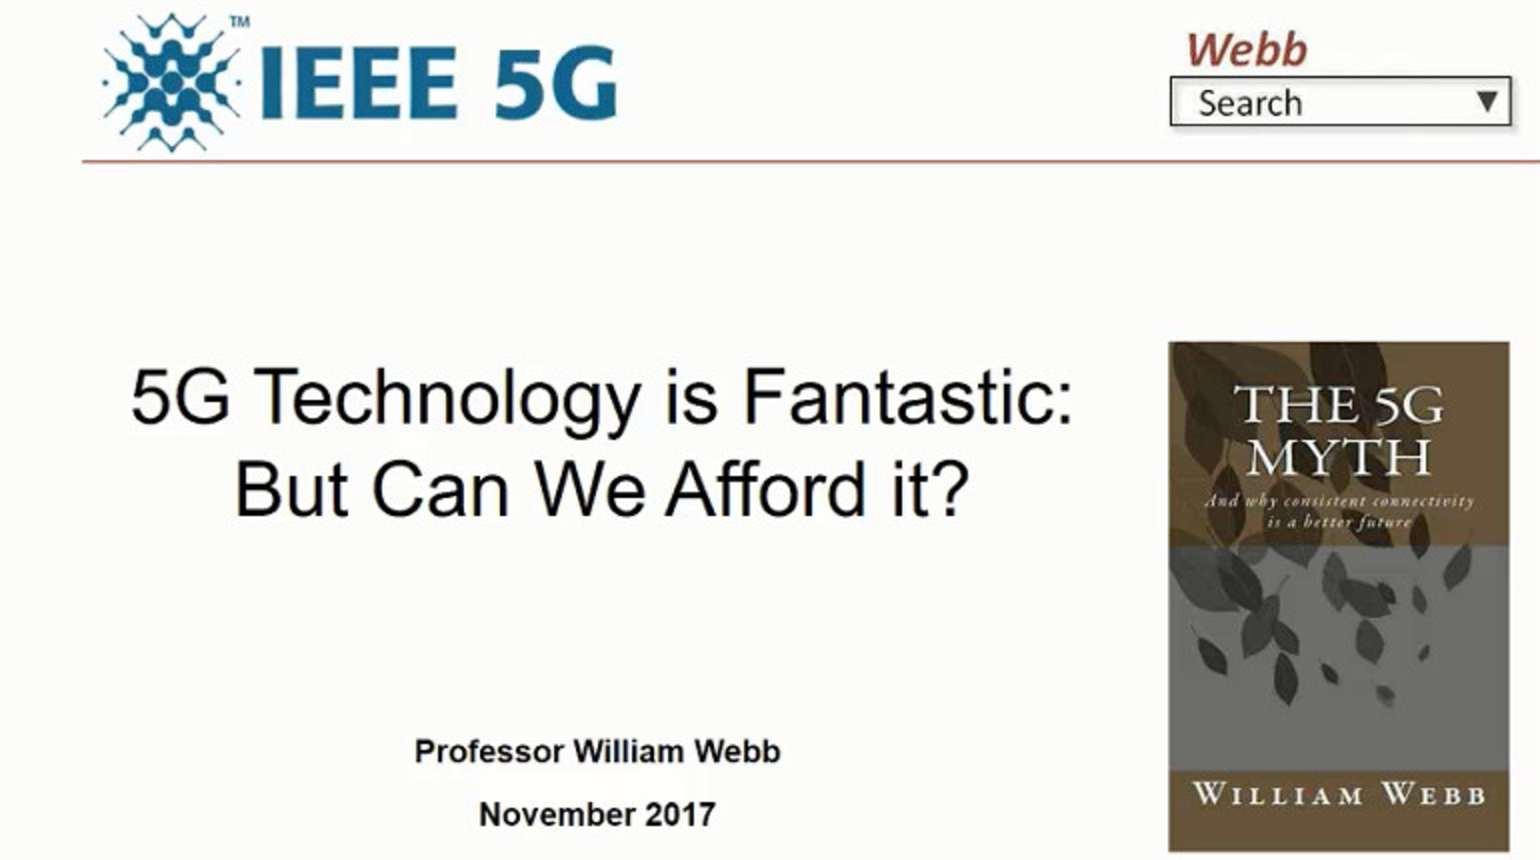 IEEE Future Networks: 5G Technology Is Fantastic, But Can We Afford It?